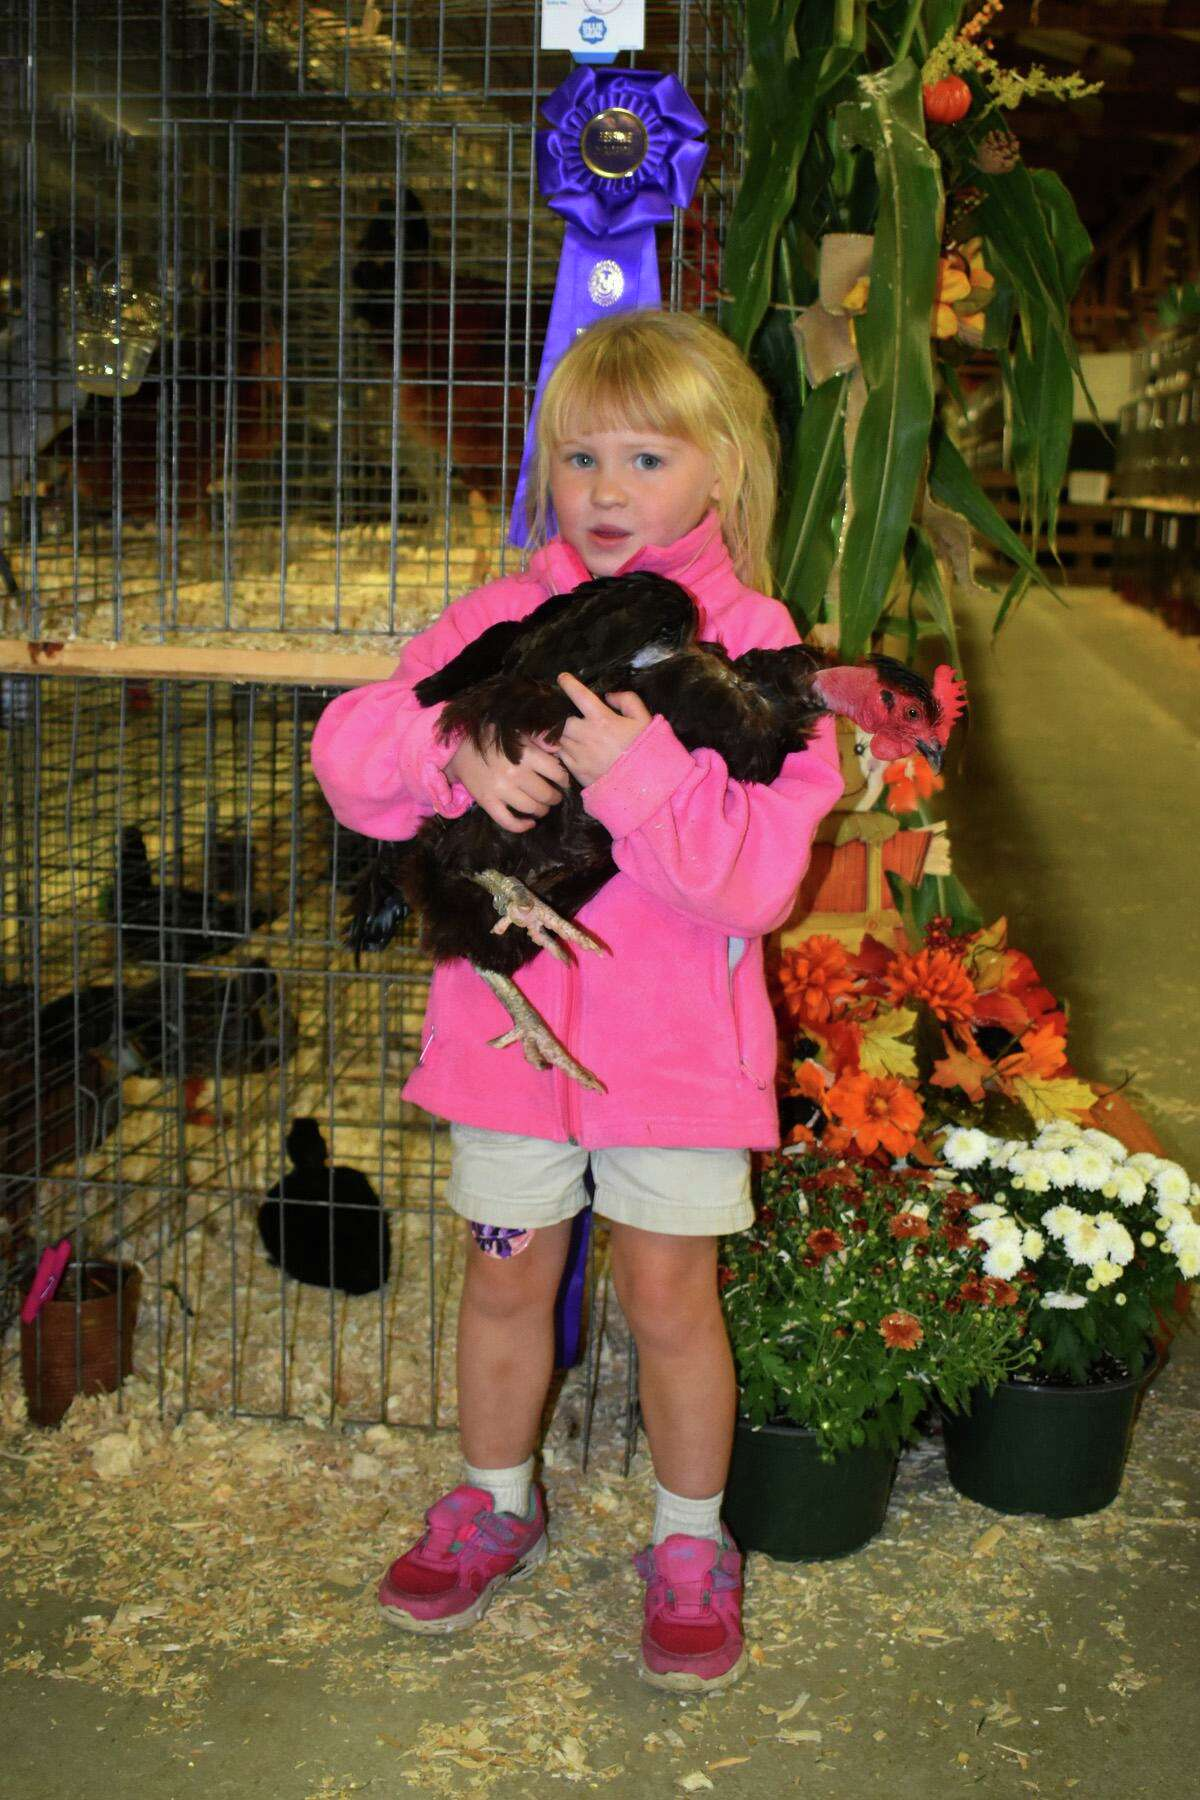 The Bethlehem Fair returns Sept. 10-12 to the fairgrounds on Route 61, with animals, competitions, rides, food, live music and games.